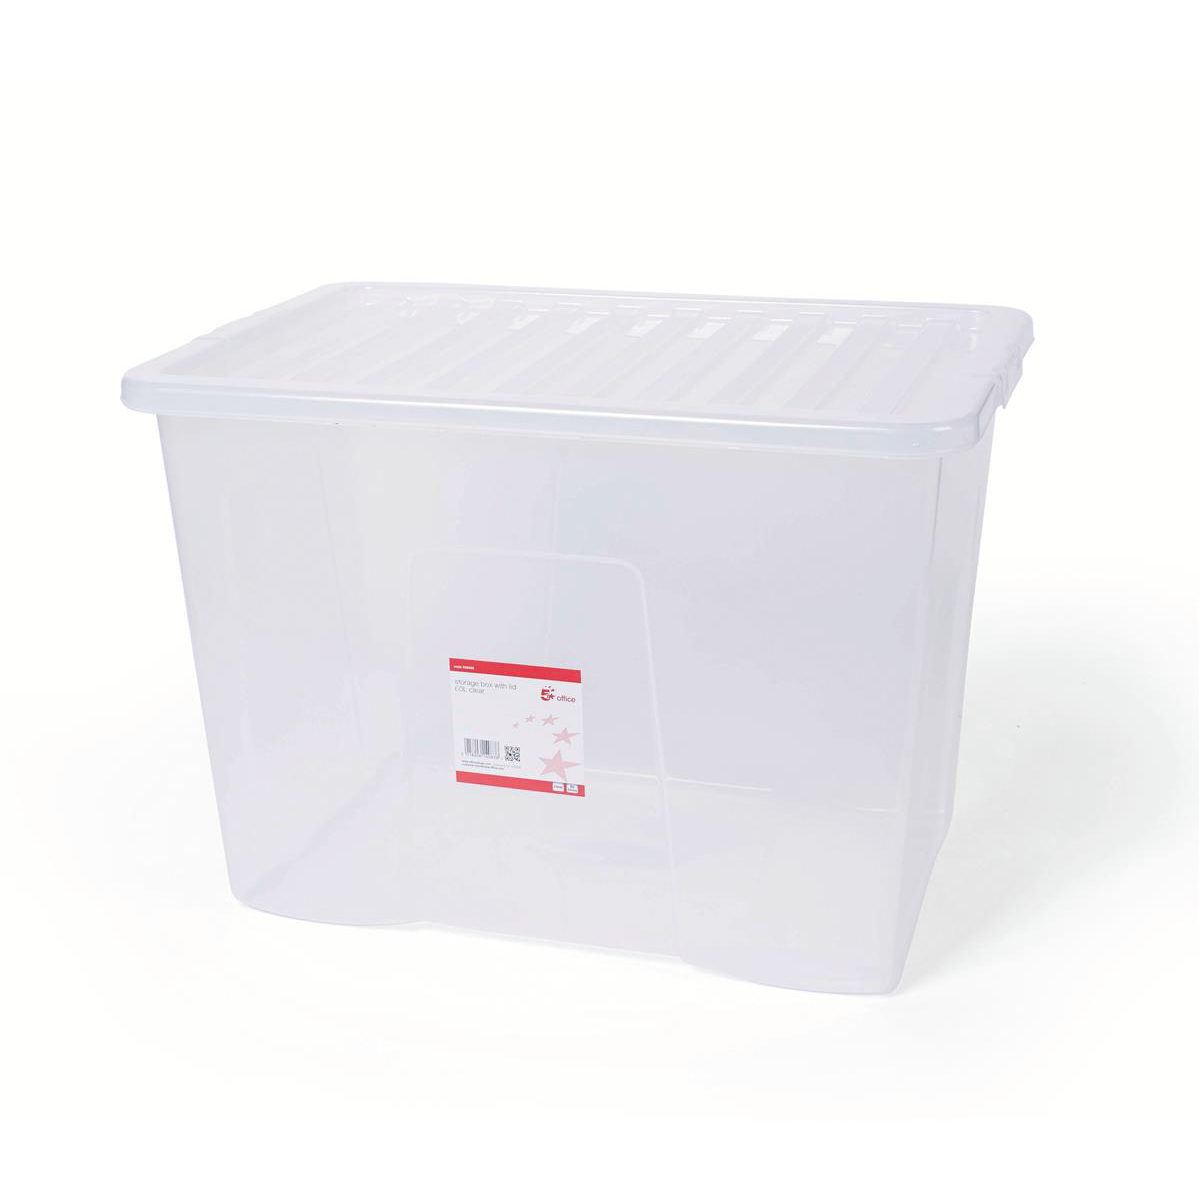 Storage Boxes 5 Star Office Storage Box Plastic with Lid Stackable 60 Litre Clear